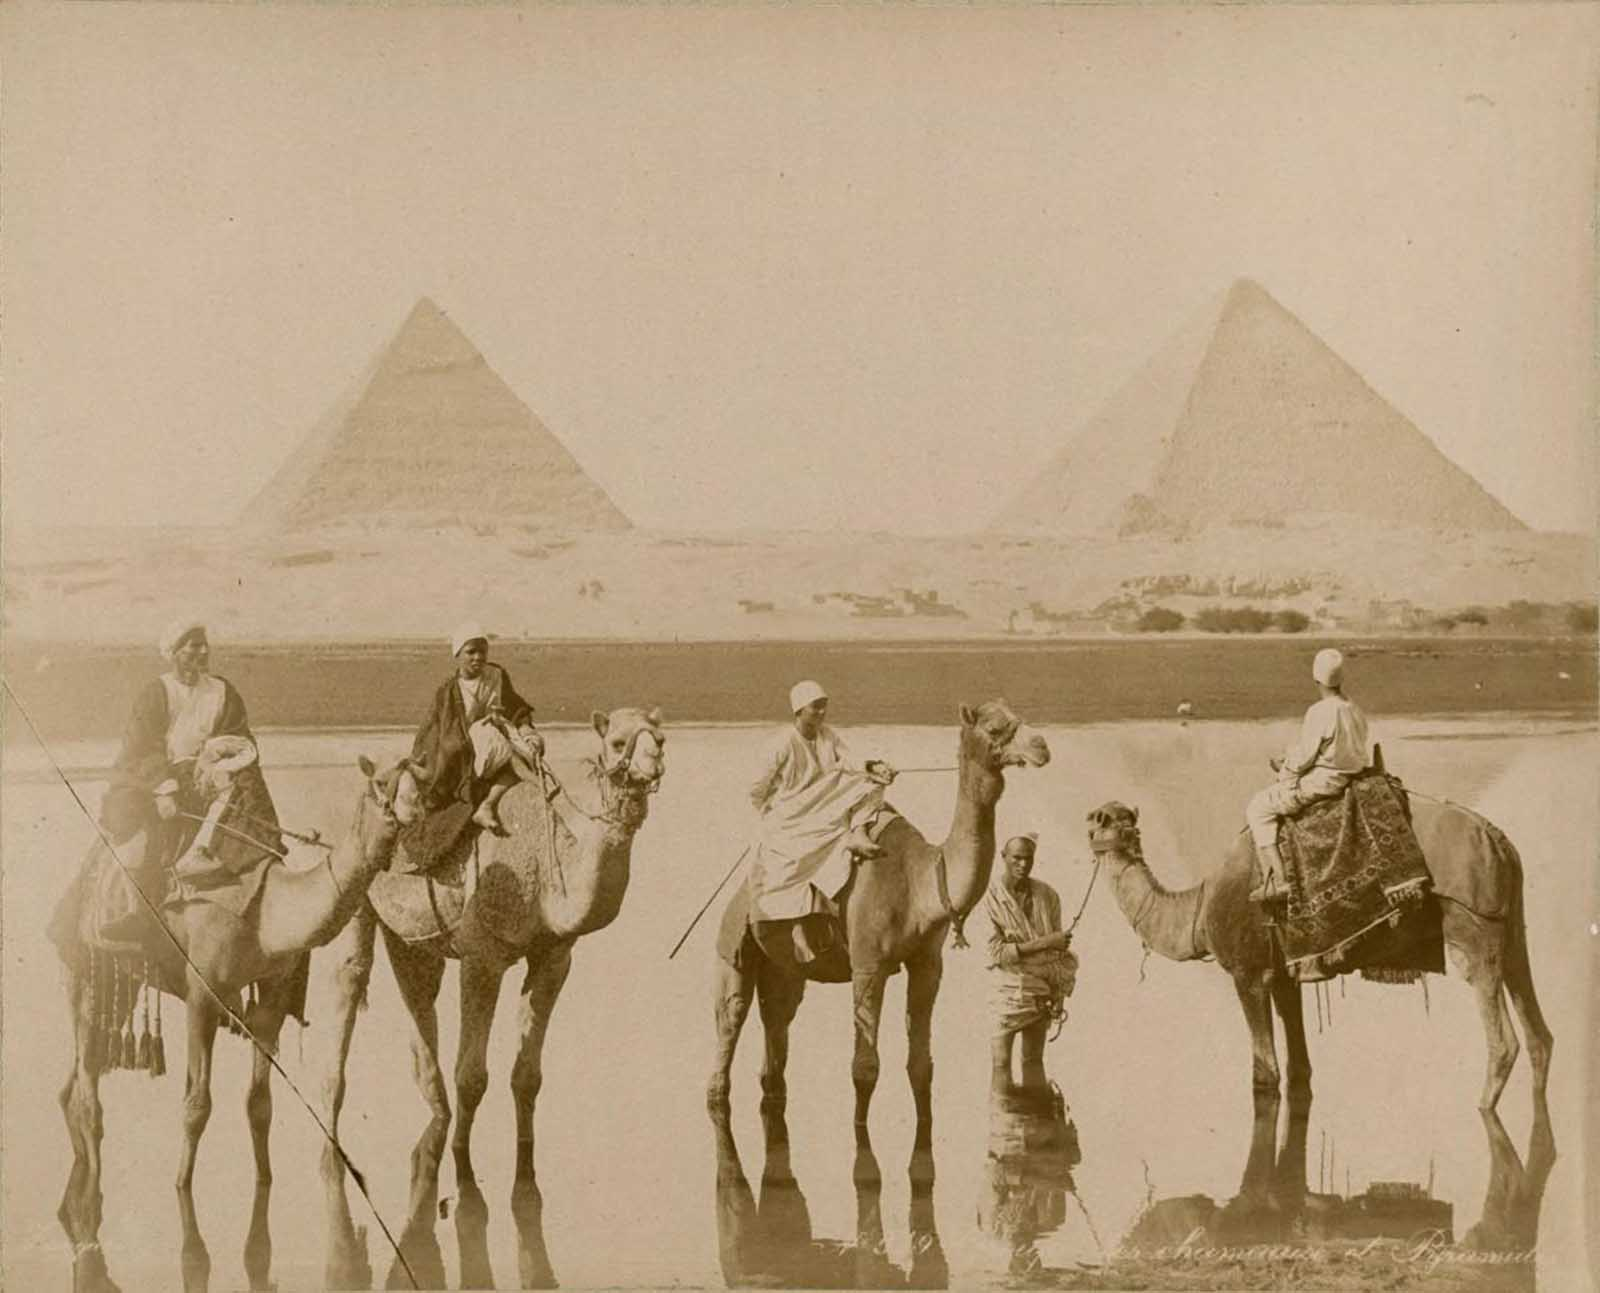 Camel riders near the pyramids.